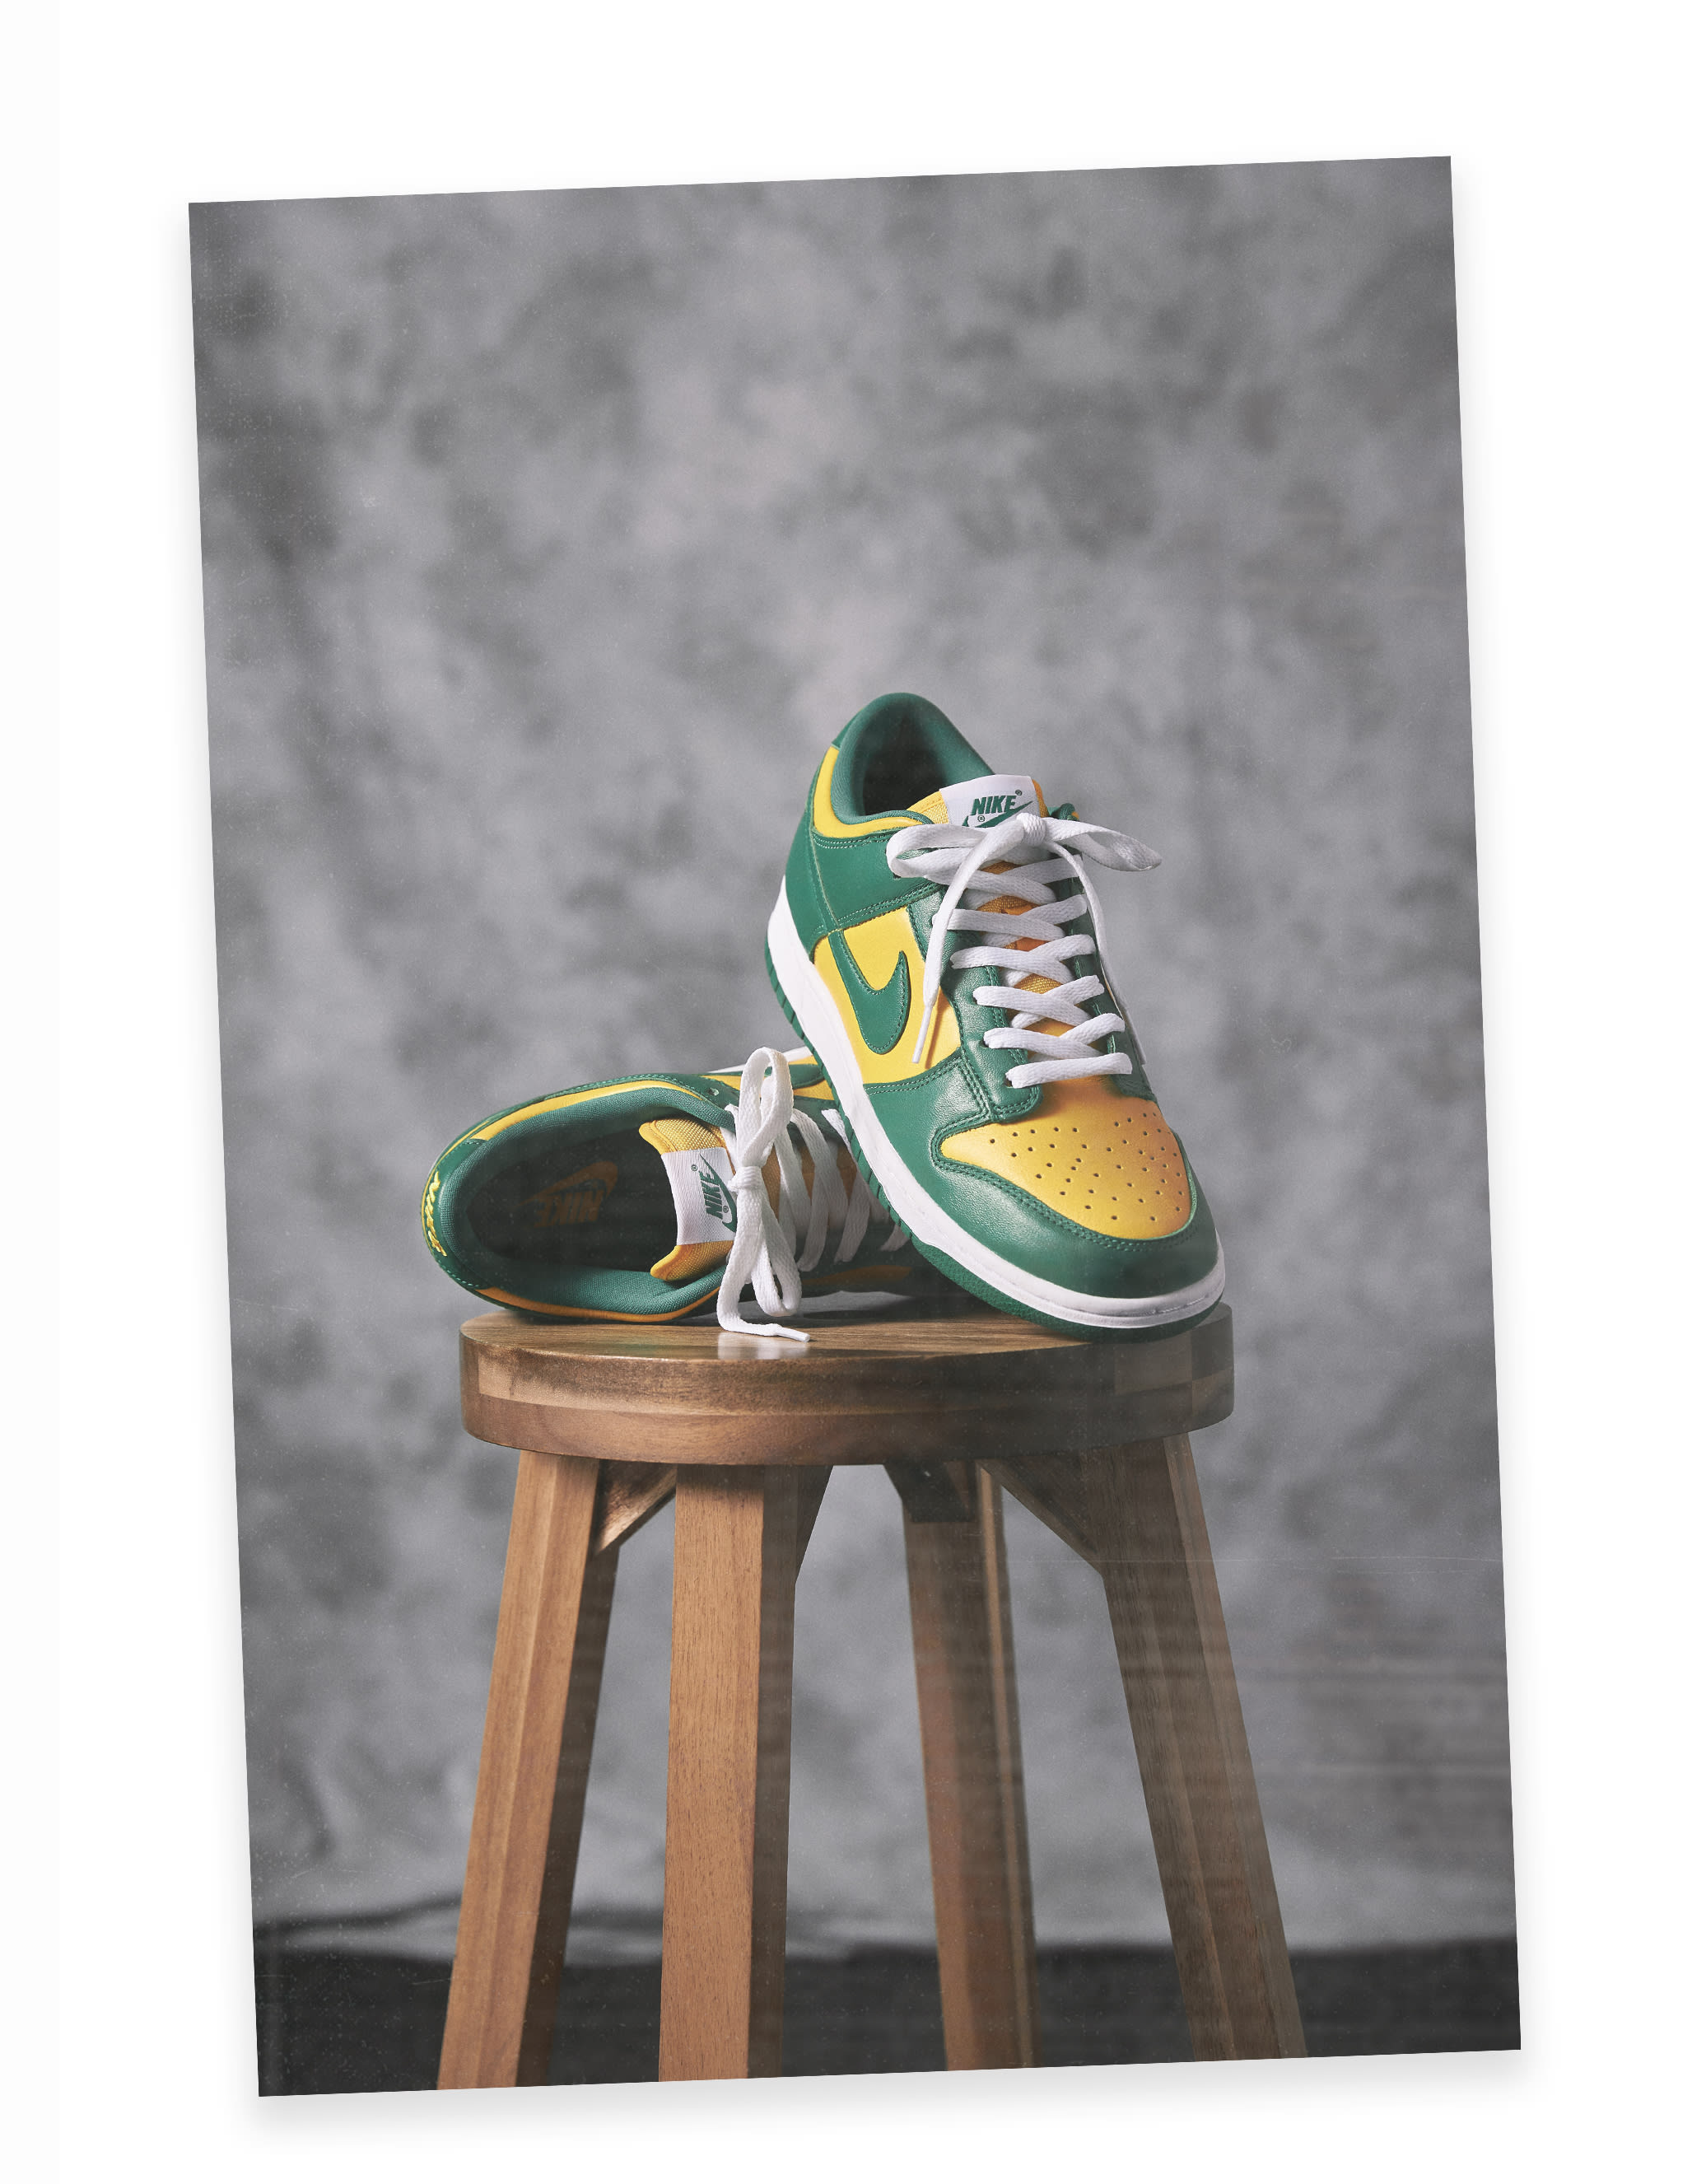 Class of 2020 Year of the Dunk - Nike Dunk Low Brazil